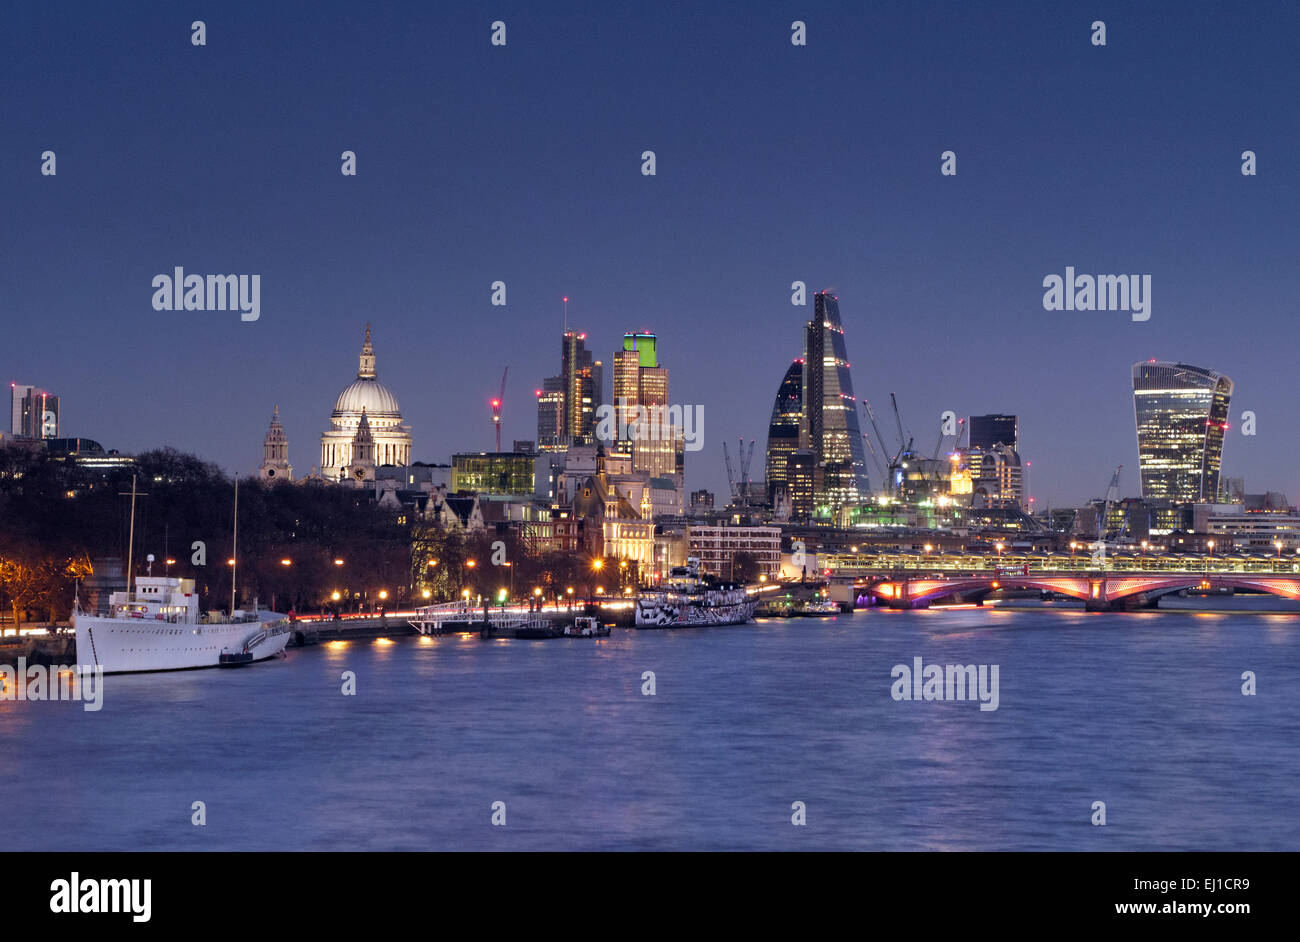 LONDON CITY SKYLINE DUSK THAMES City of London lights and River Thames viewed from Waterloo Bridge at clear sunset - Stock Image